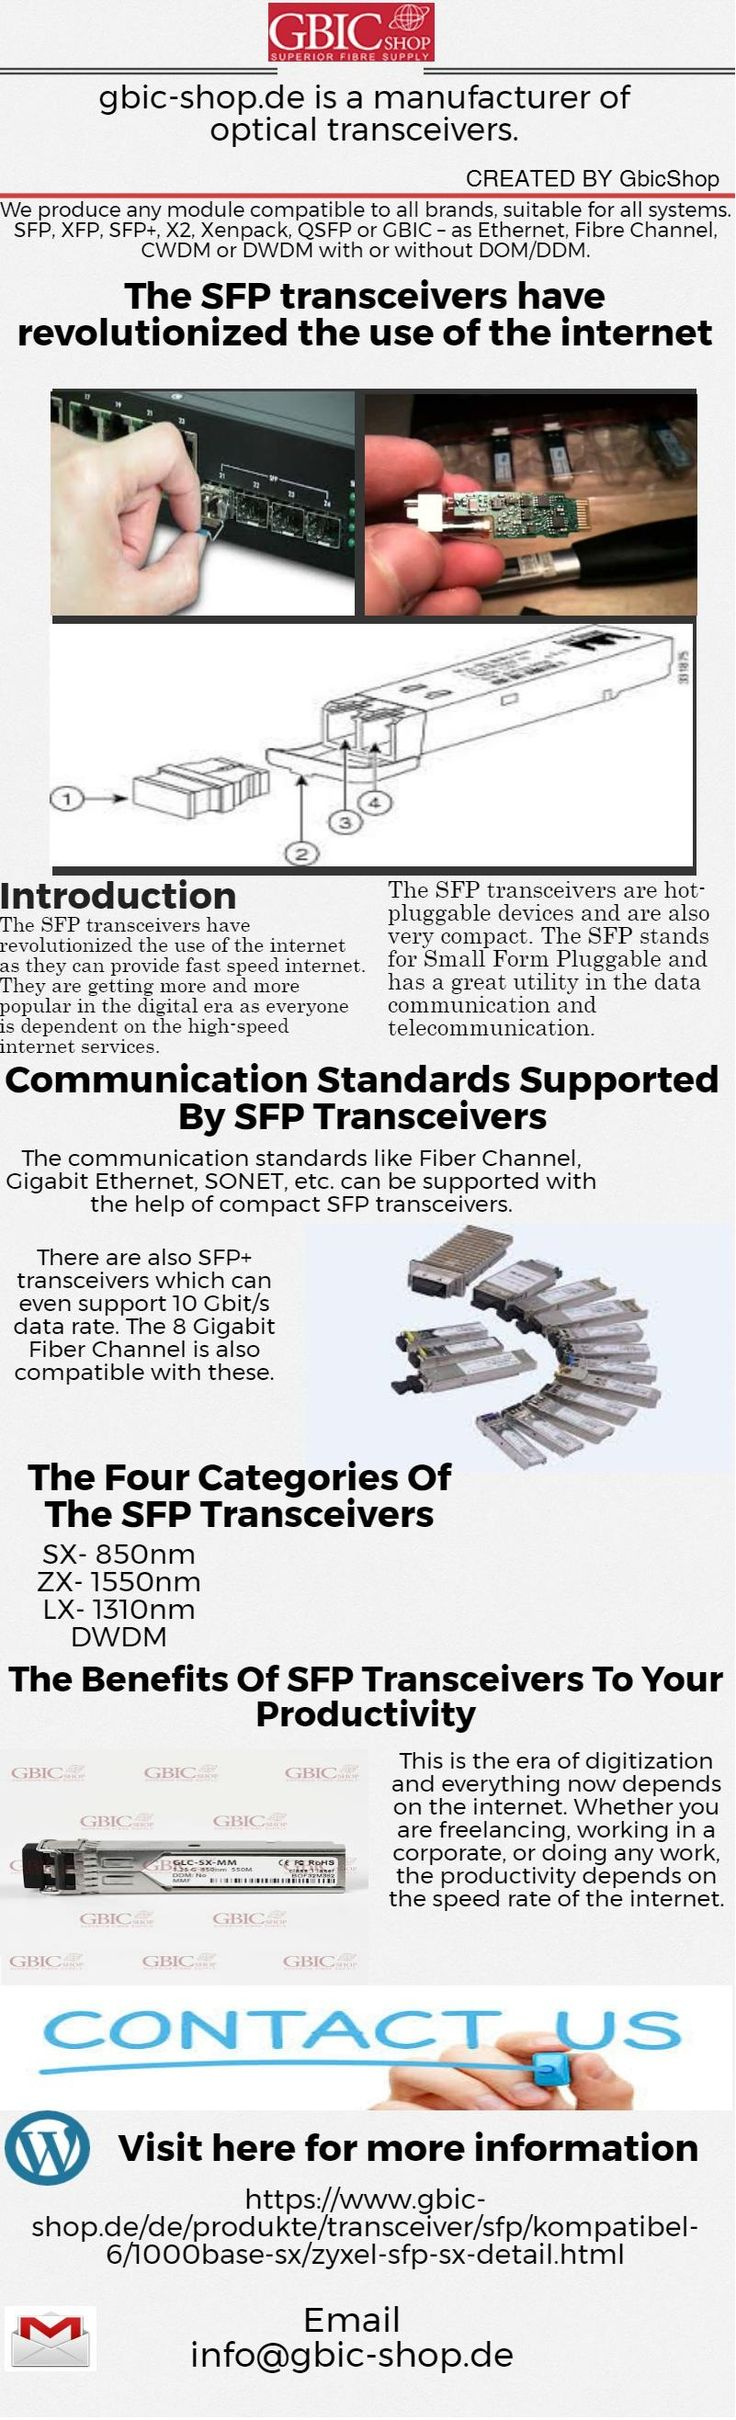 https://www.gbic-shop.de/de/produkte/transceiver/sfp/kompatibel-6/1000base-sx/zyxel-sfp-sx-detail.html  The SFP transceivers are hot-pluggable devices and are also very compact. The SFP stands for Small Form   Pluggable and has a great utility in the data communication and telecommunication.